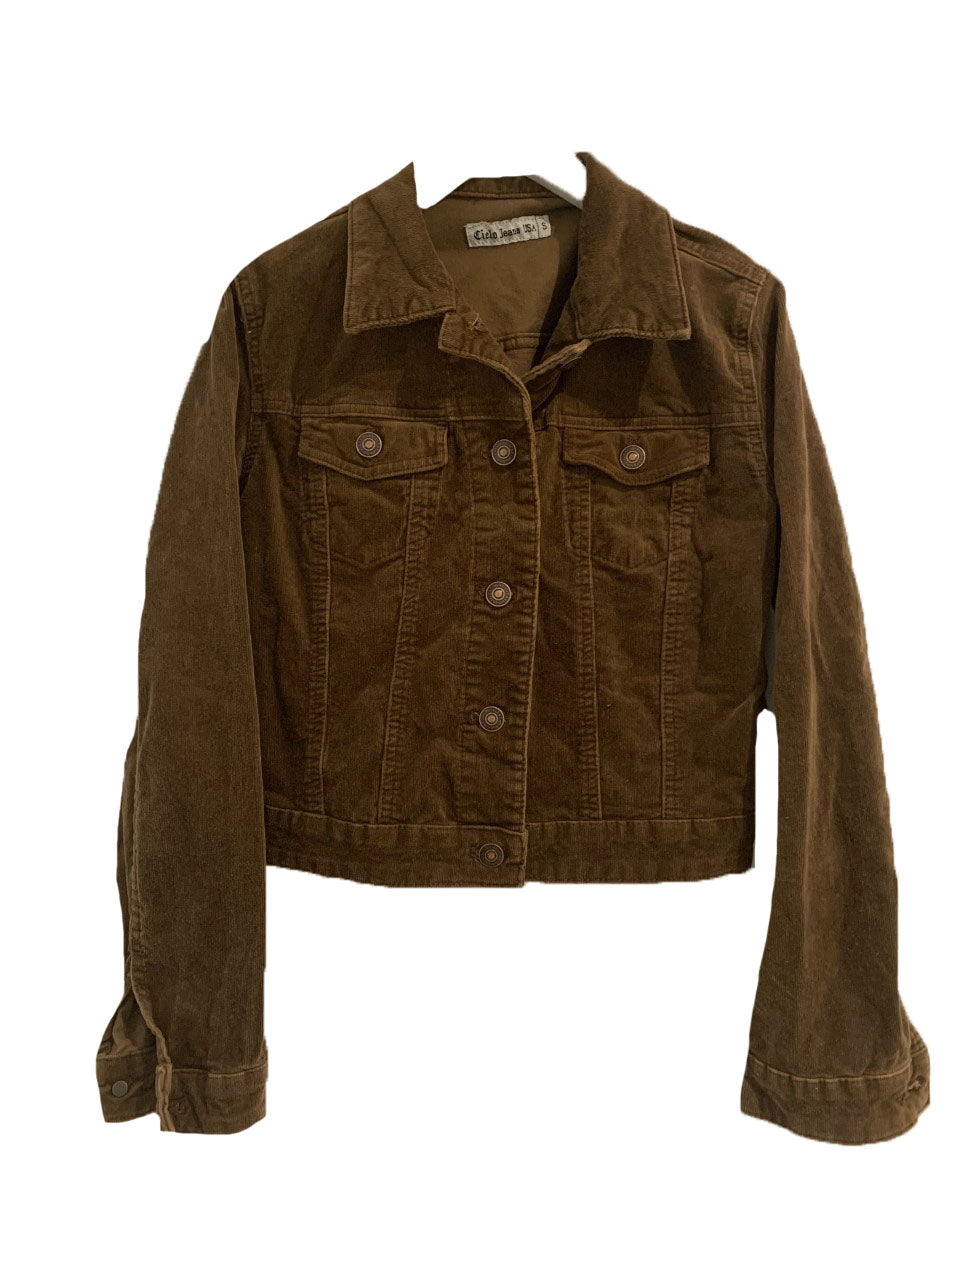 Expresso brown corduroy jacket